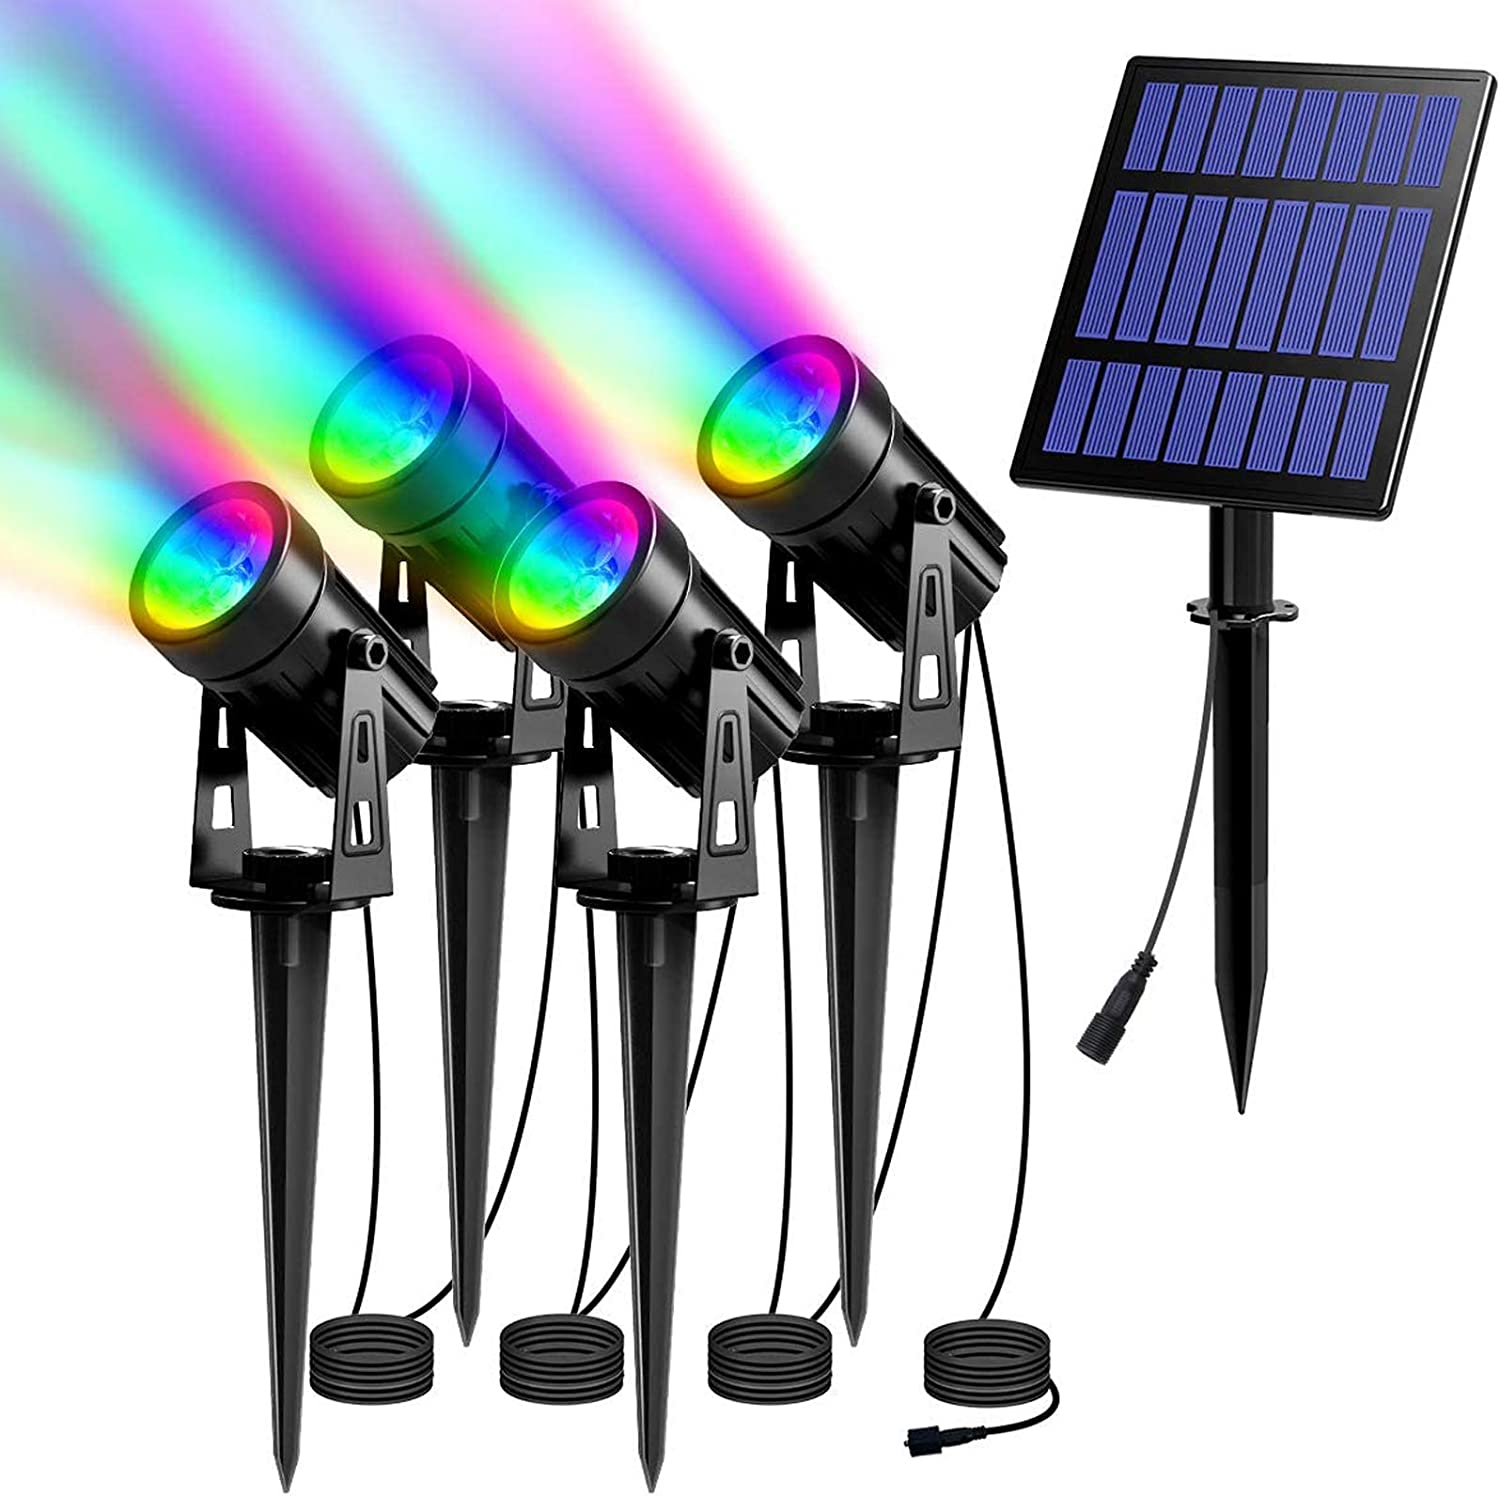 T-SUN RGB Solar Spotlights Outdoor Lights with Pack 4 Sacramento Mall 5W Super popular specialty store